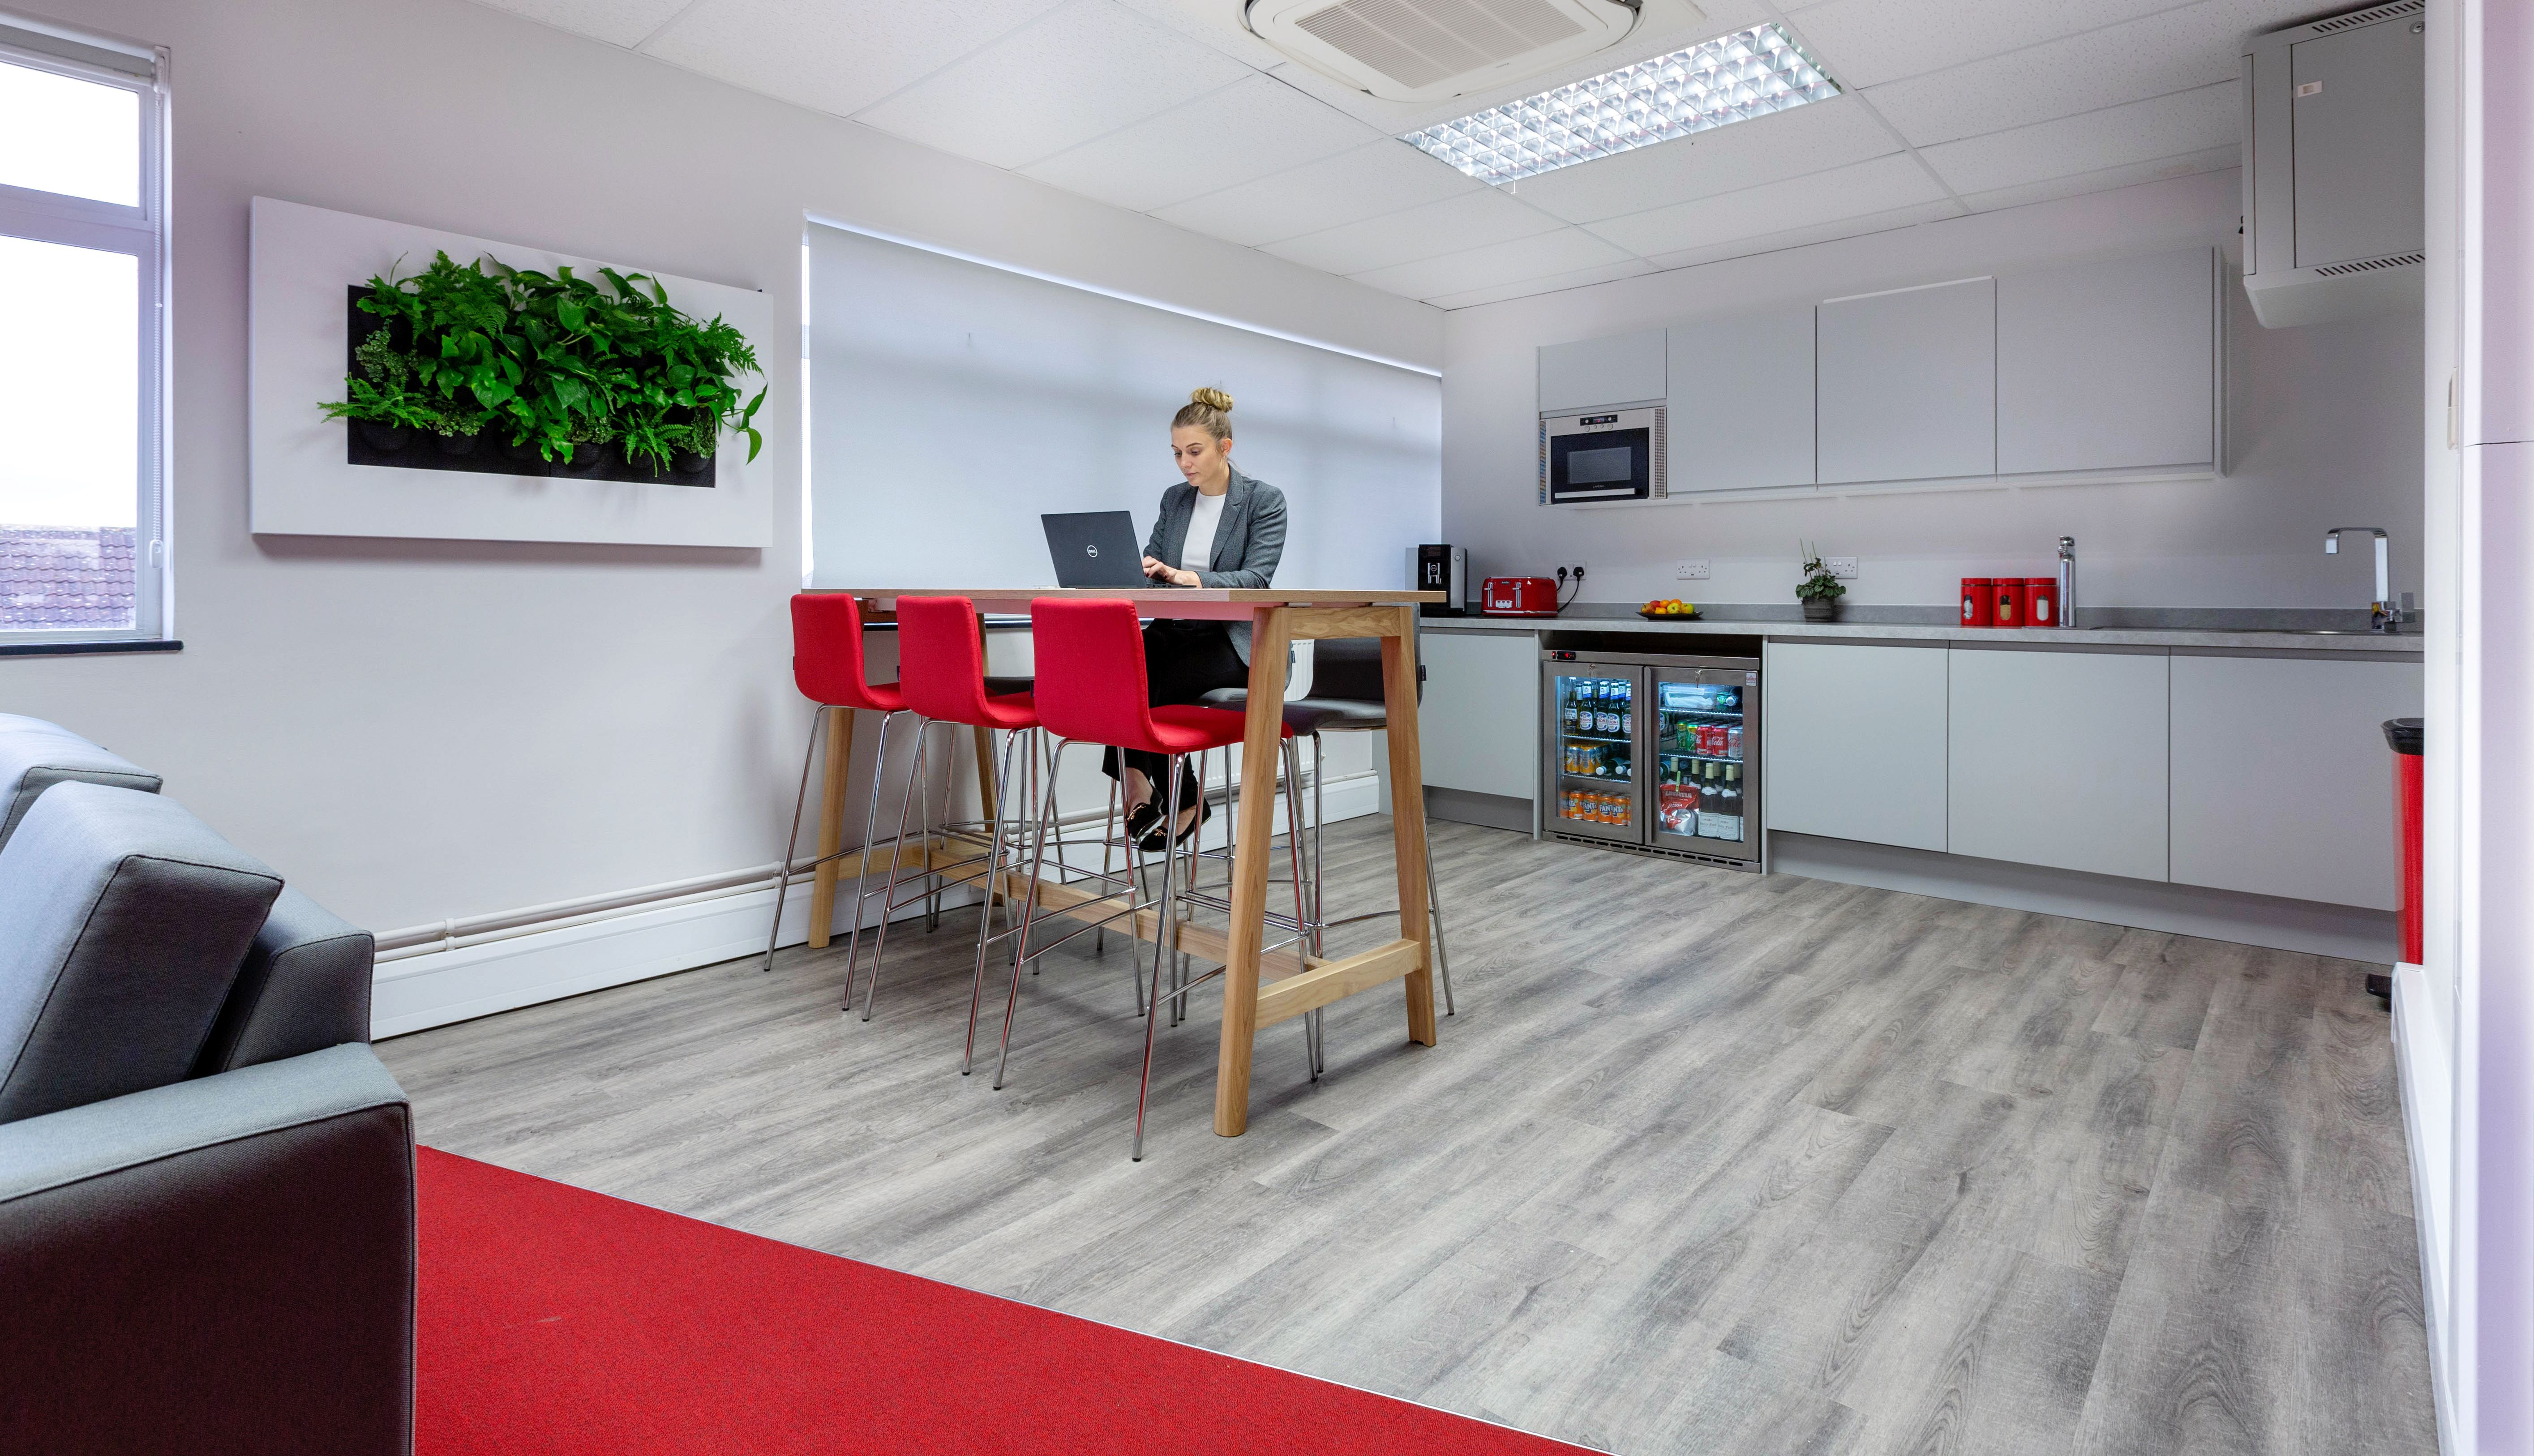 Pin by Spectrum Workplace on Spectrum Workplace Projects